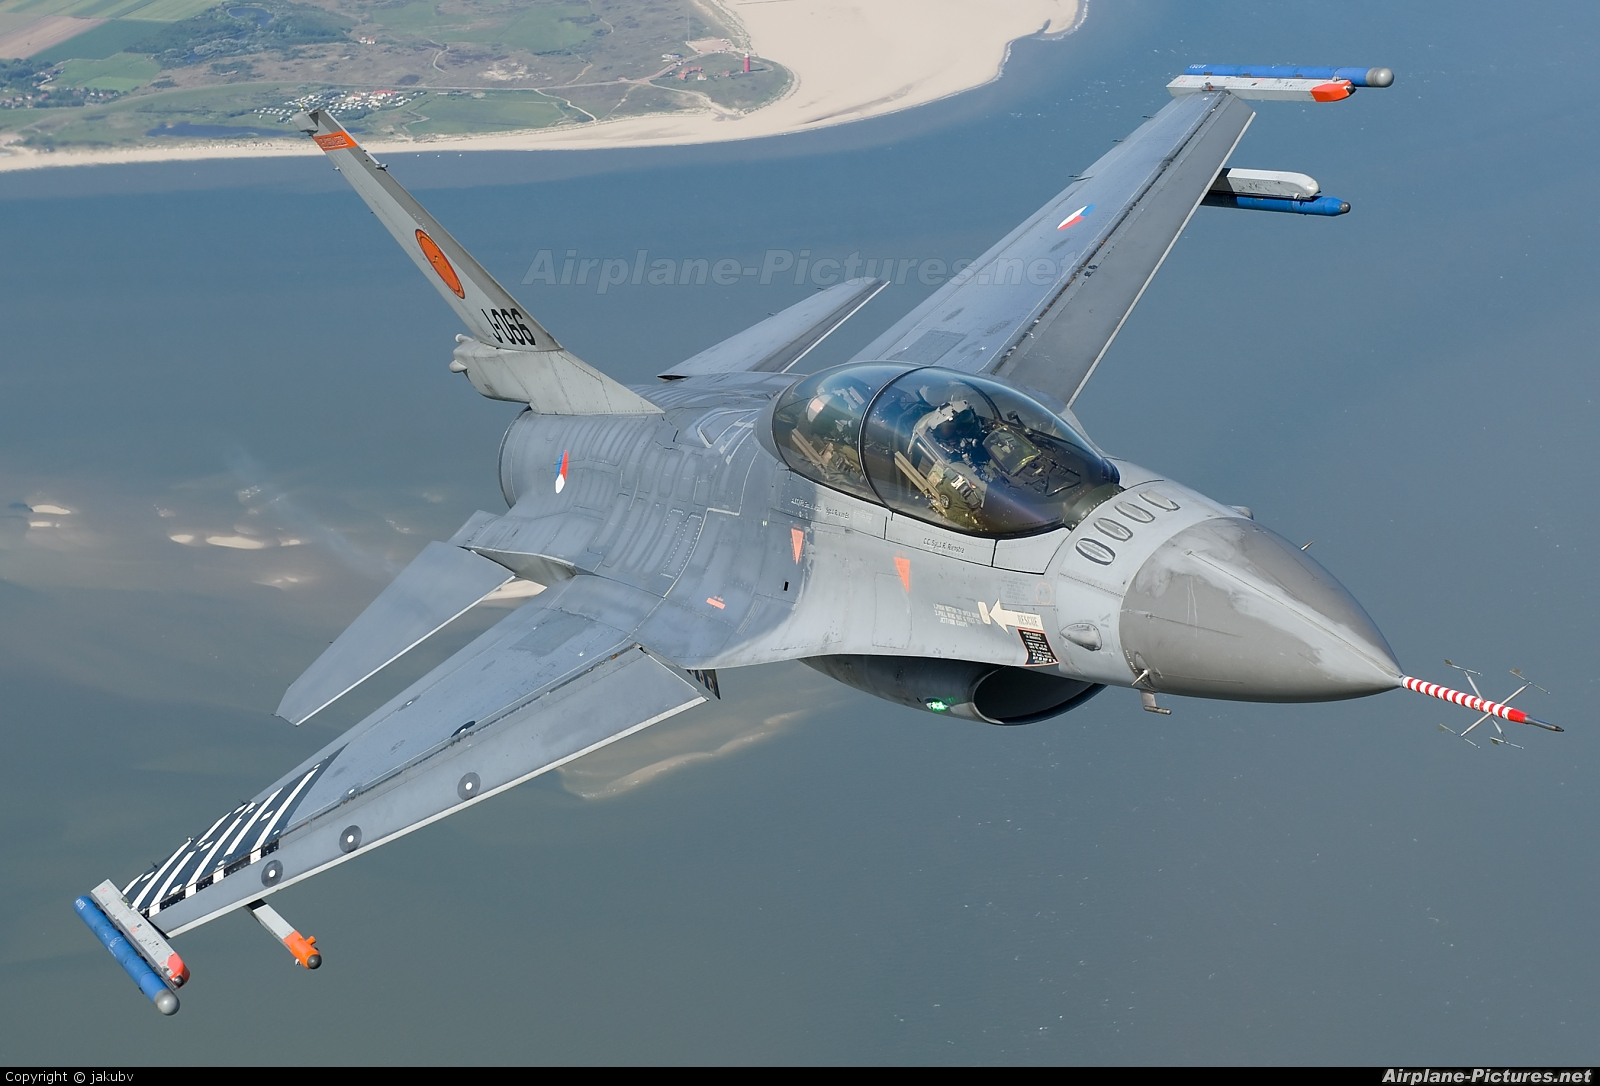 Netherlands - Air Force J-066 aircraft at In Flight - Netherlands